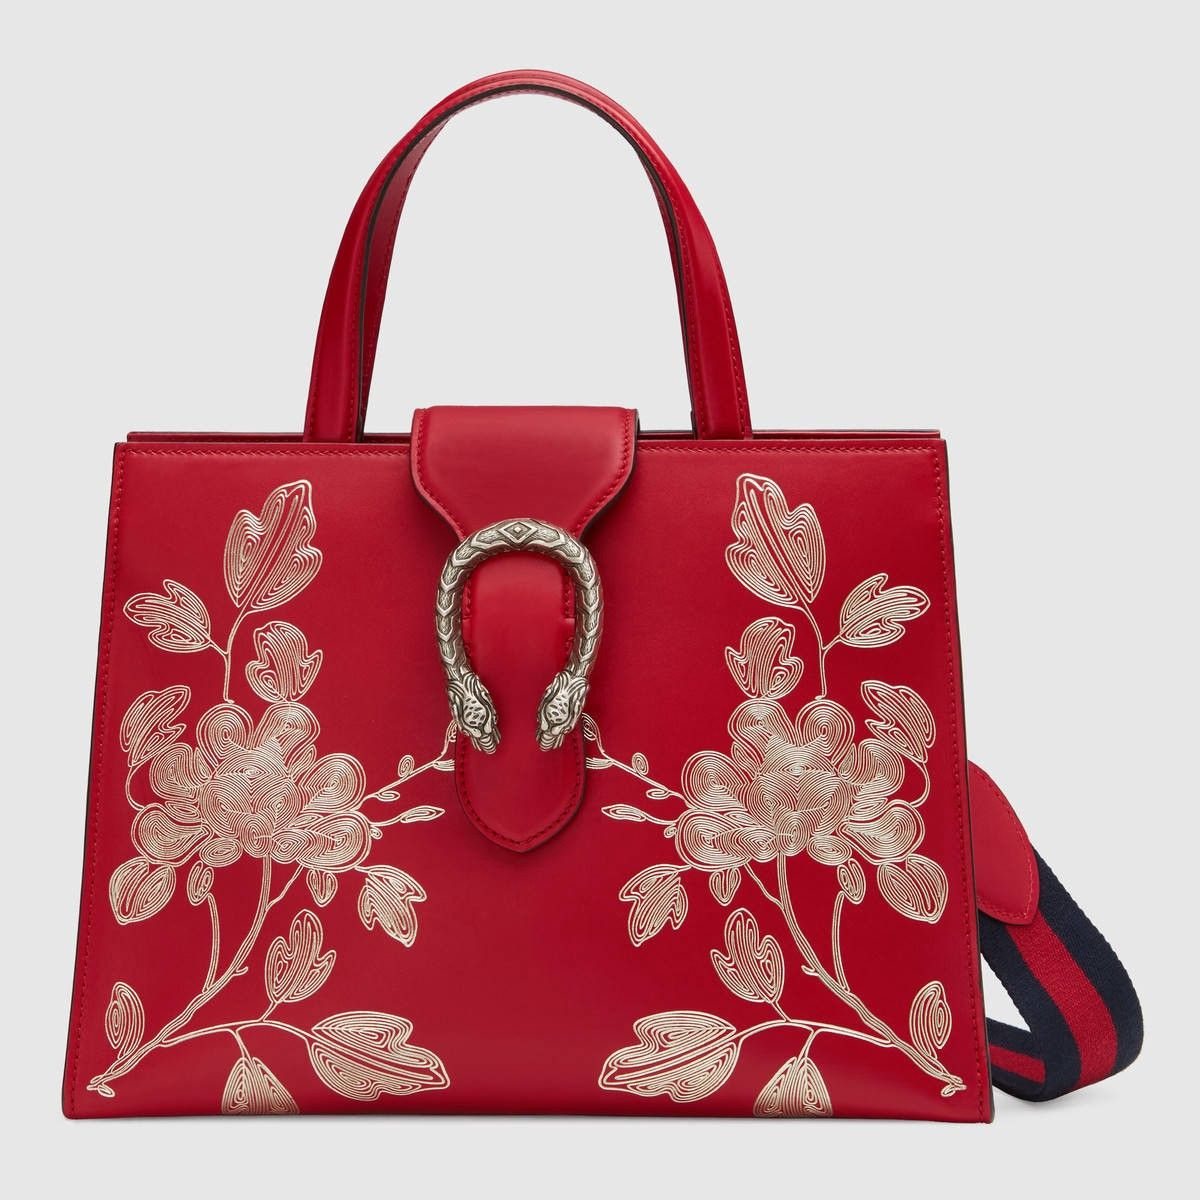 GUCCI Chinese New Year Dionysus Top Handle Bag - Hibiscus Red Leather.   gucci  bags  lining  metallic  shoulder bags  suede  hand bags  nylon   7d1ffd089a6f